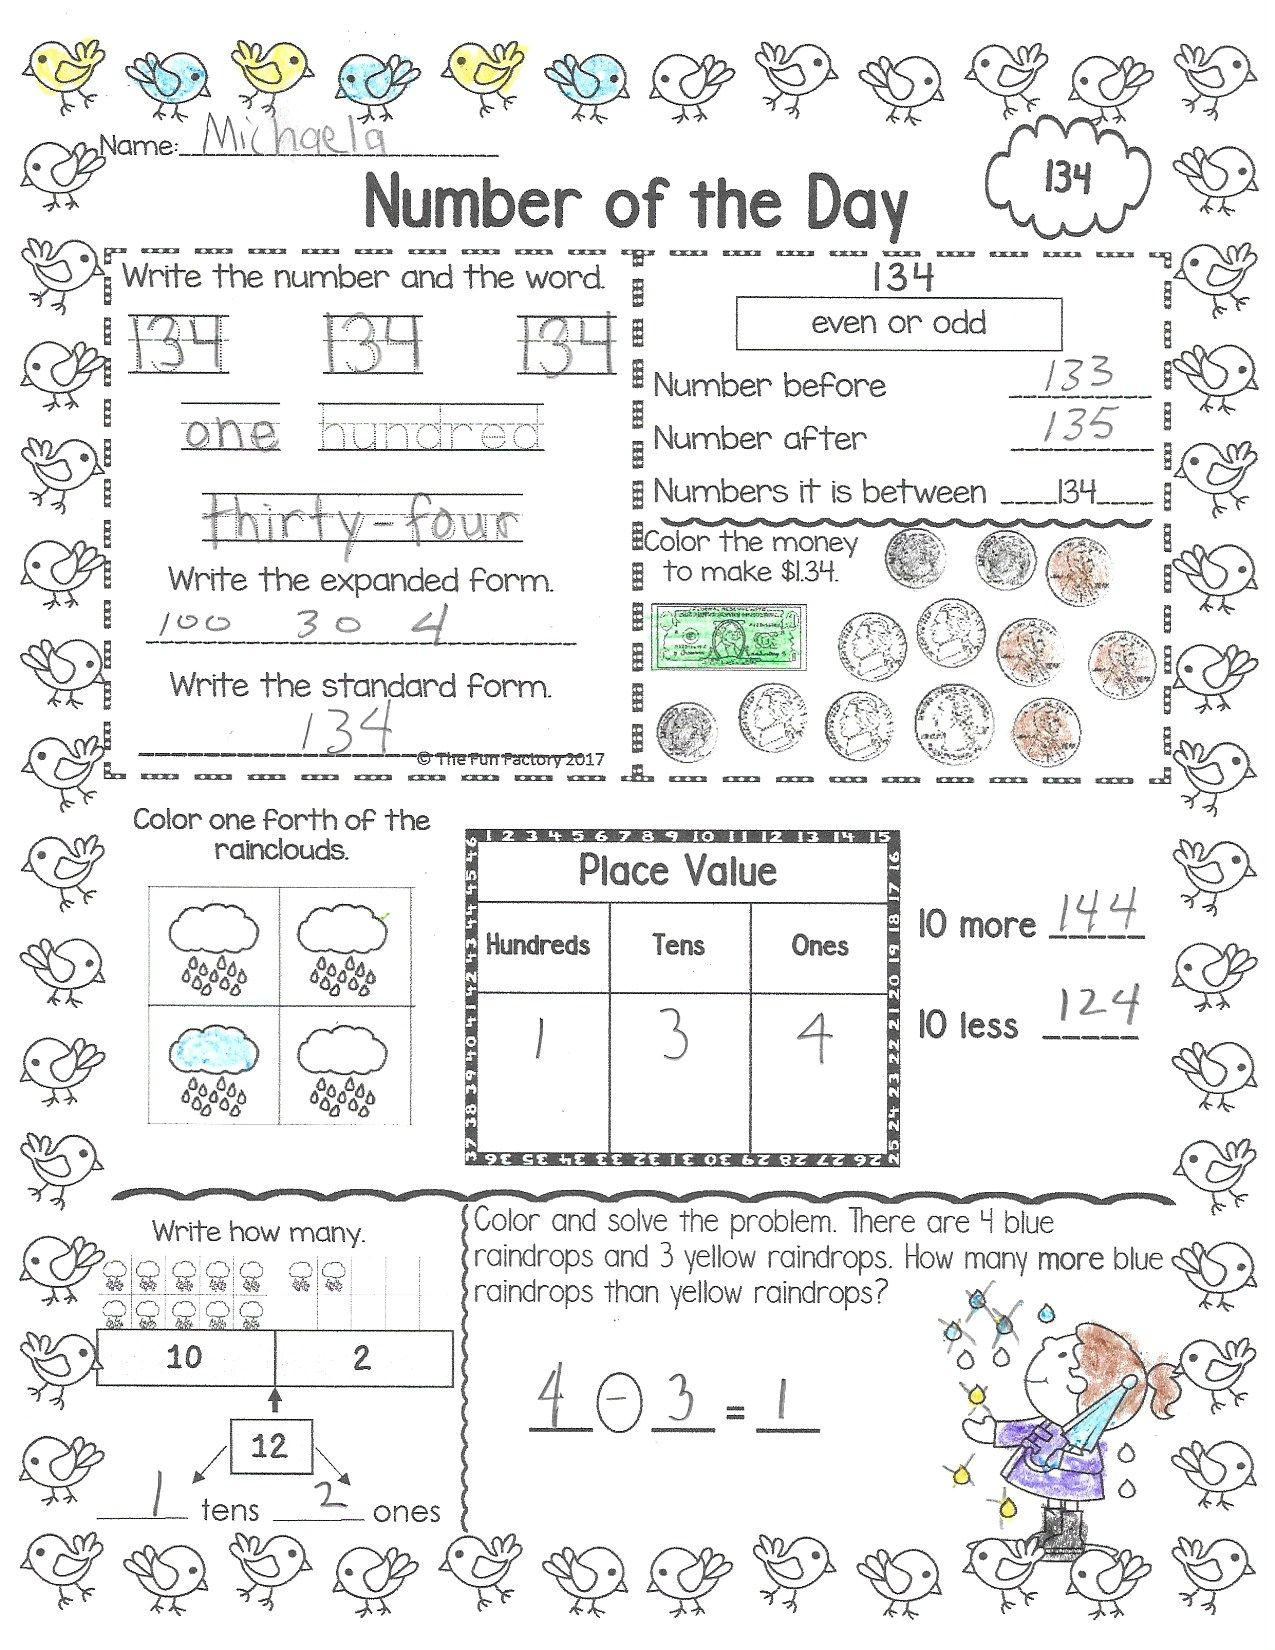 hight resolution of Number of the Day 1st Grade April   Math worksheets